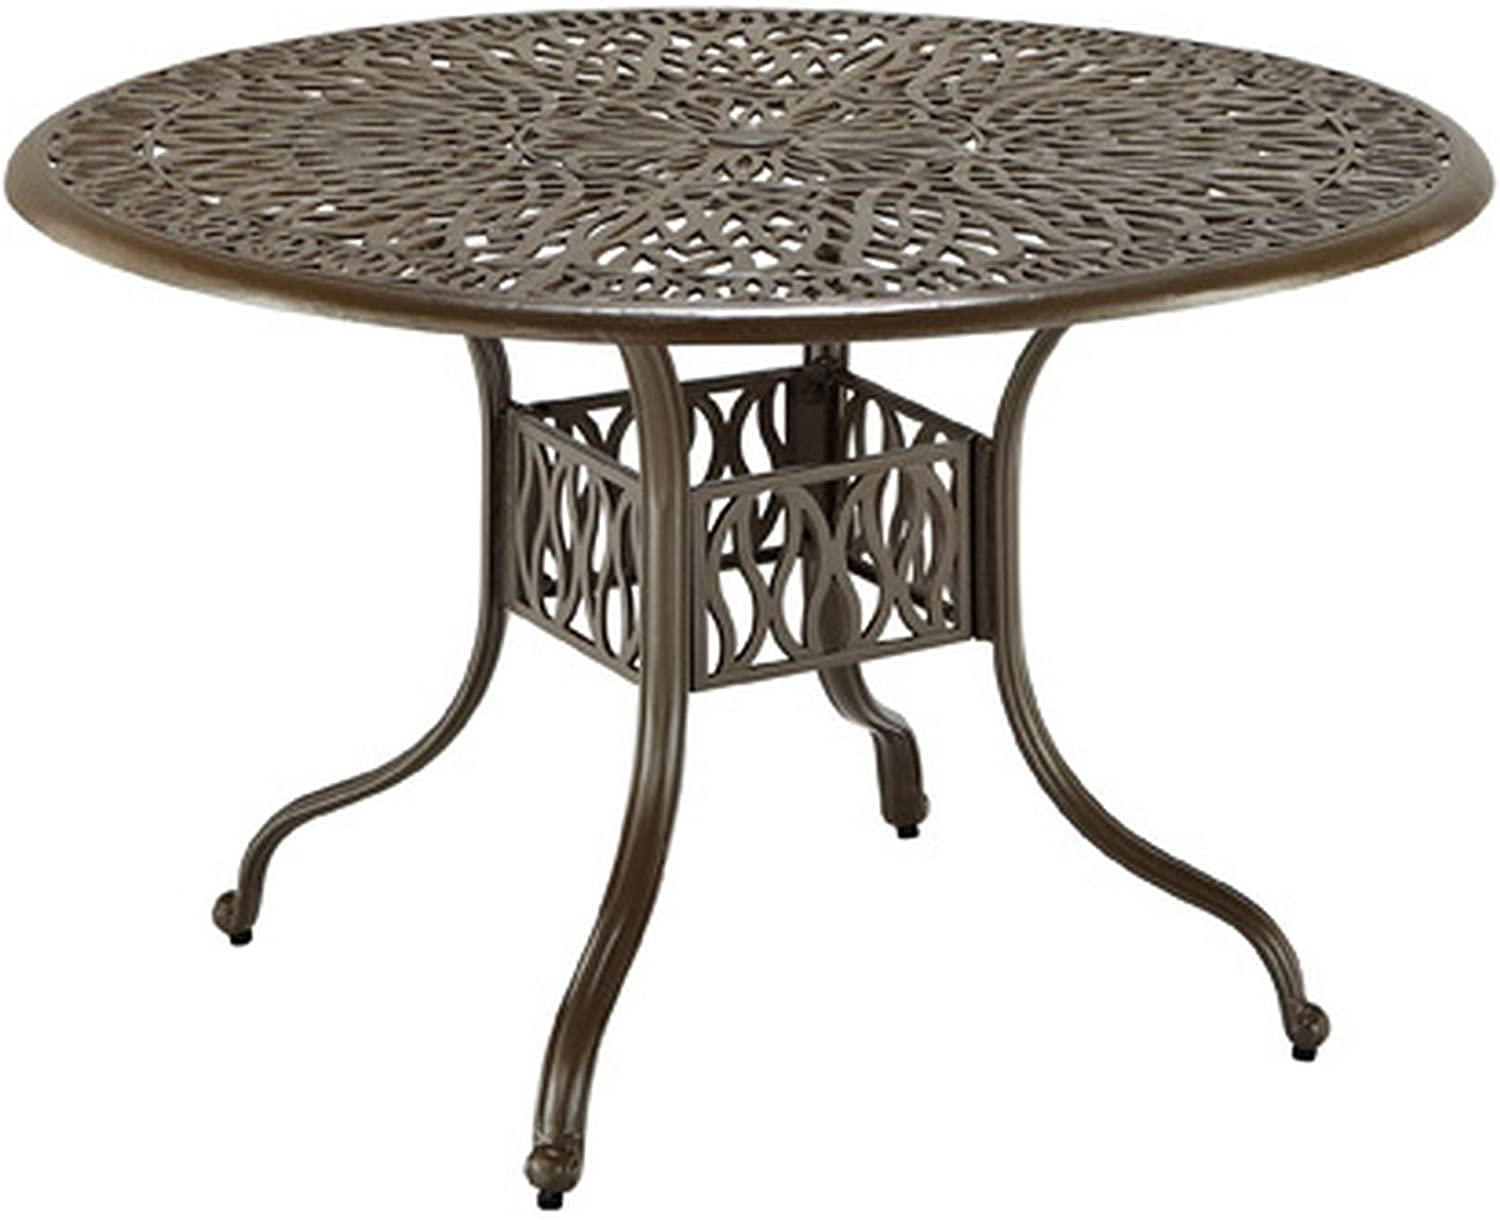 homestyles 6659-32 Outdoor Dining Table, 48Lx48Dx29H, Taupe